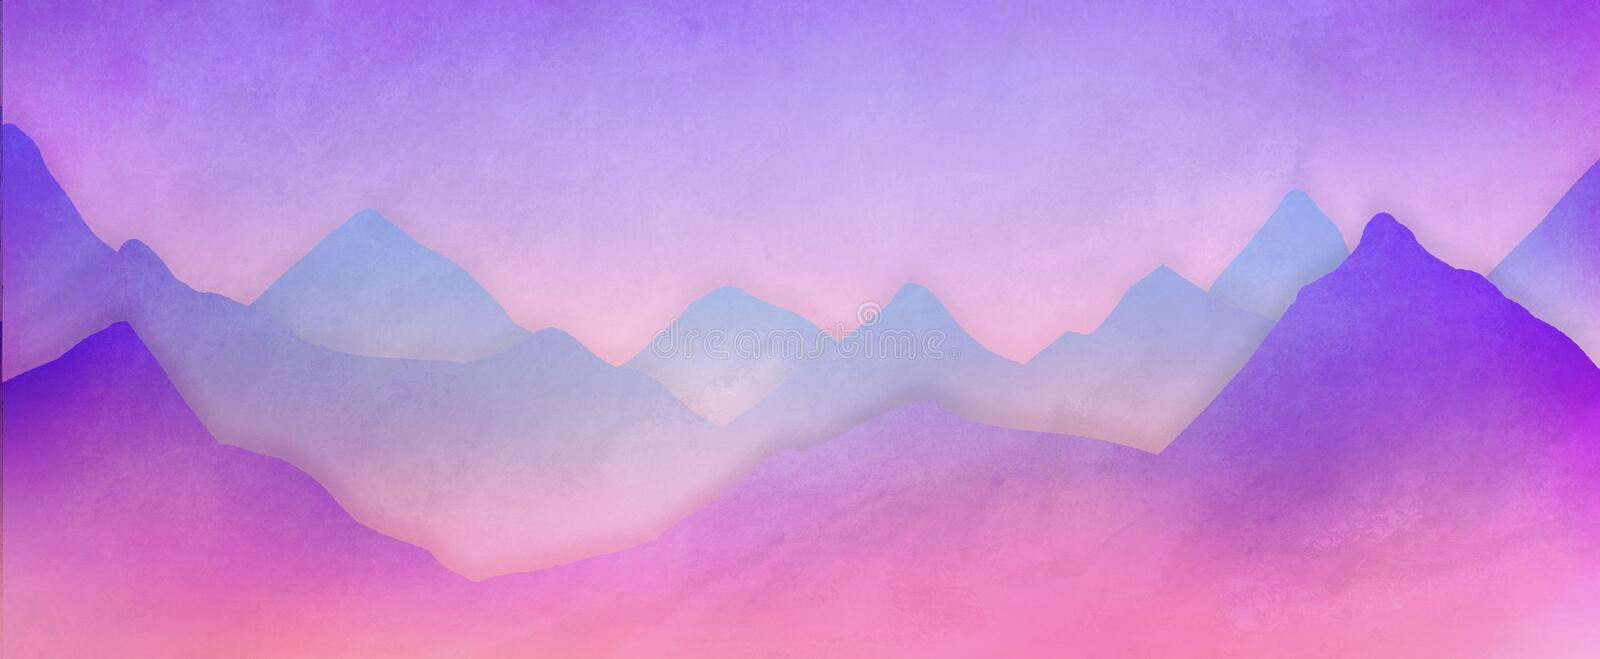 Mountain range background illustration in soft purple pink and blue with white hazy mist in pastel colors stock illustration